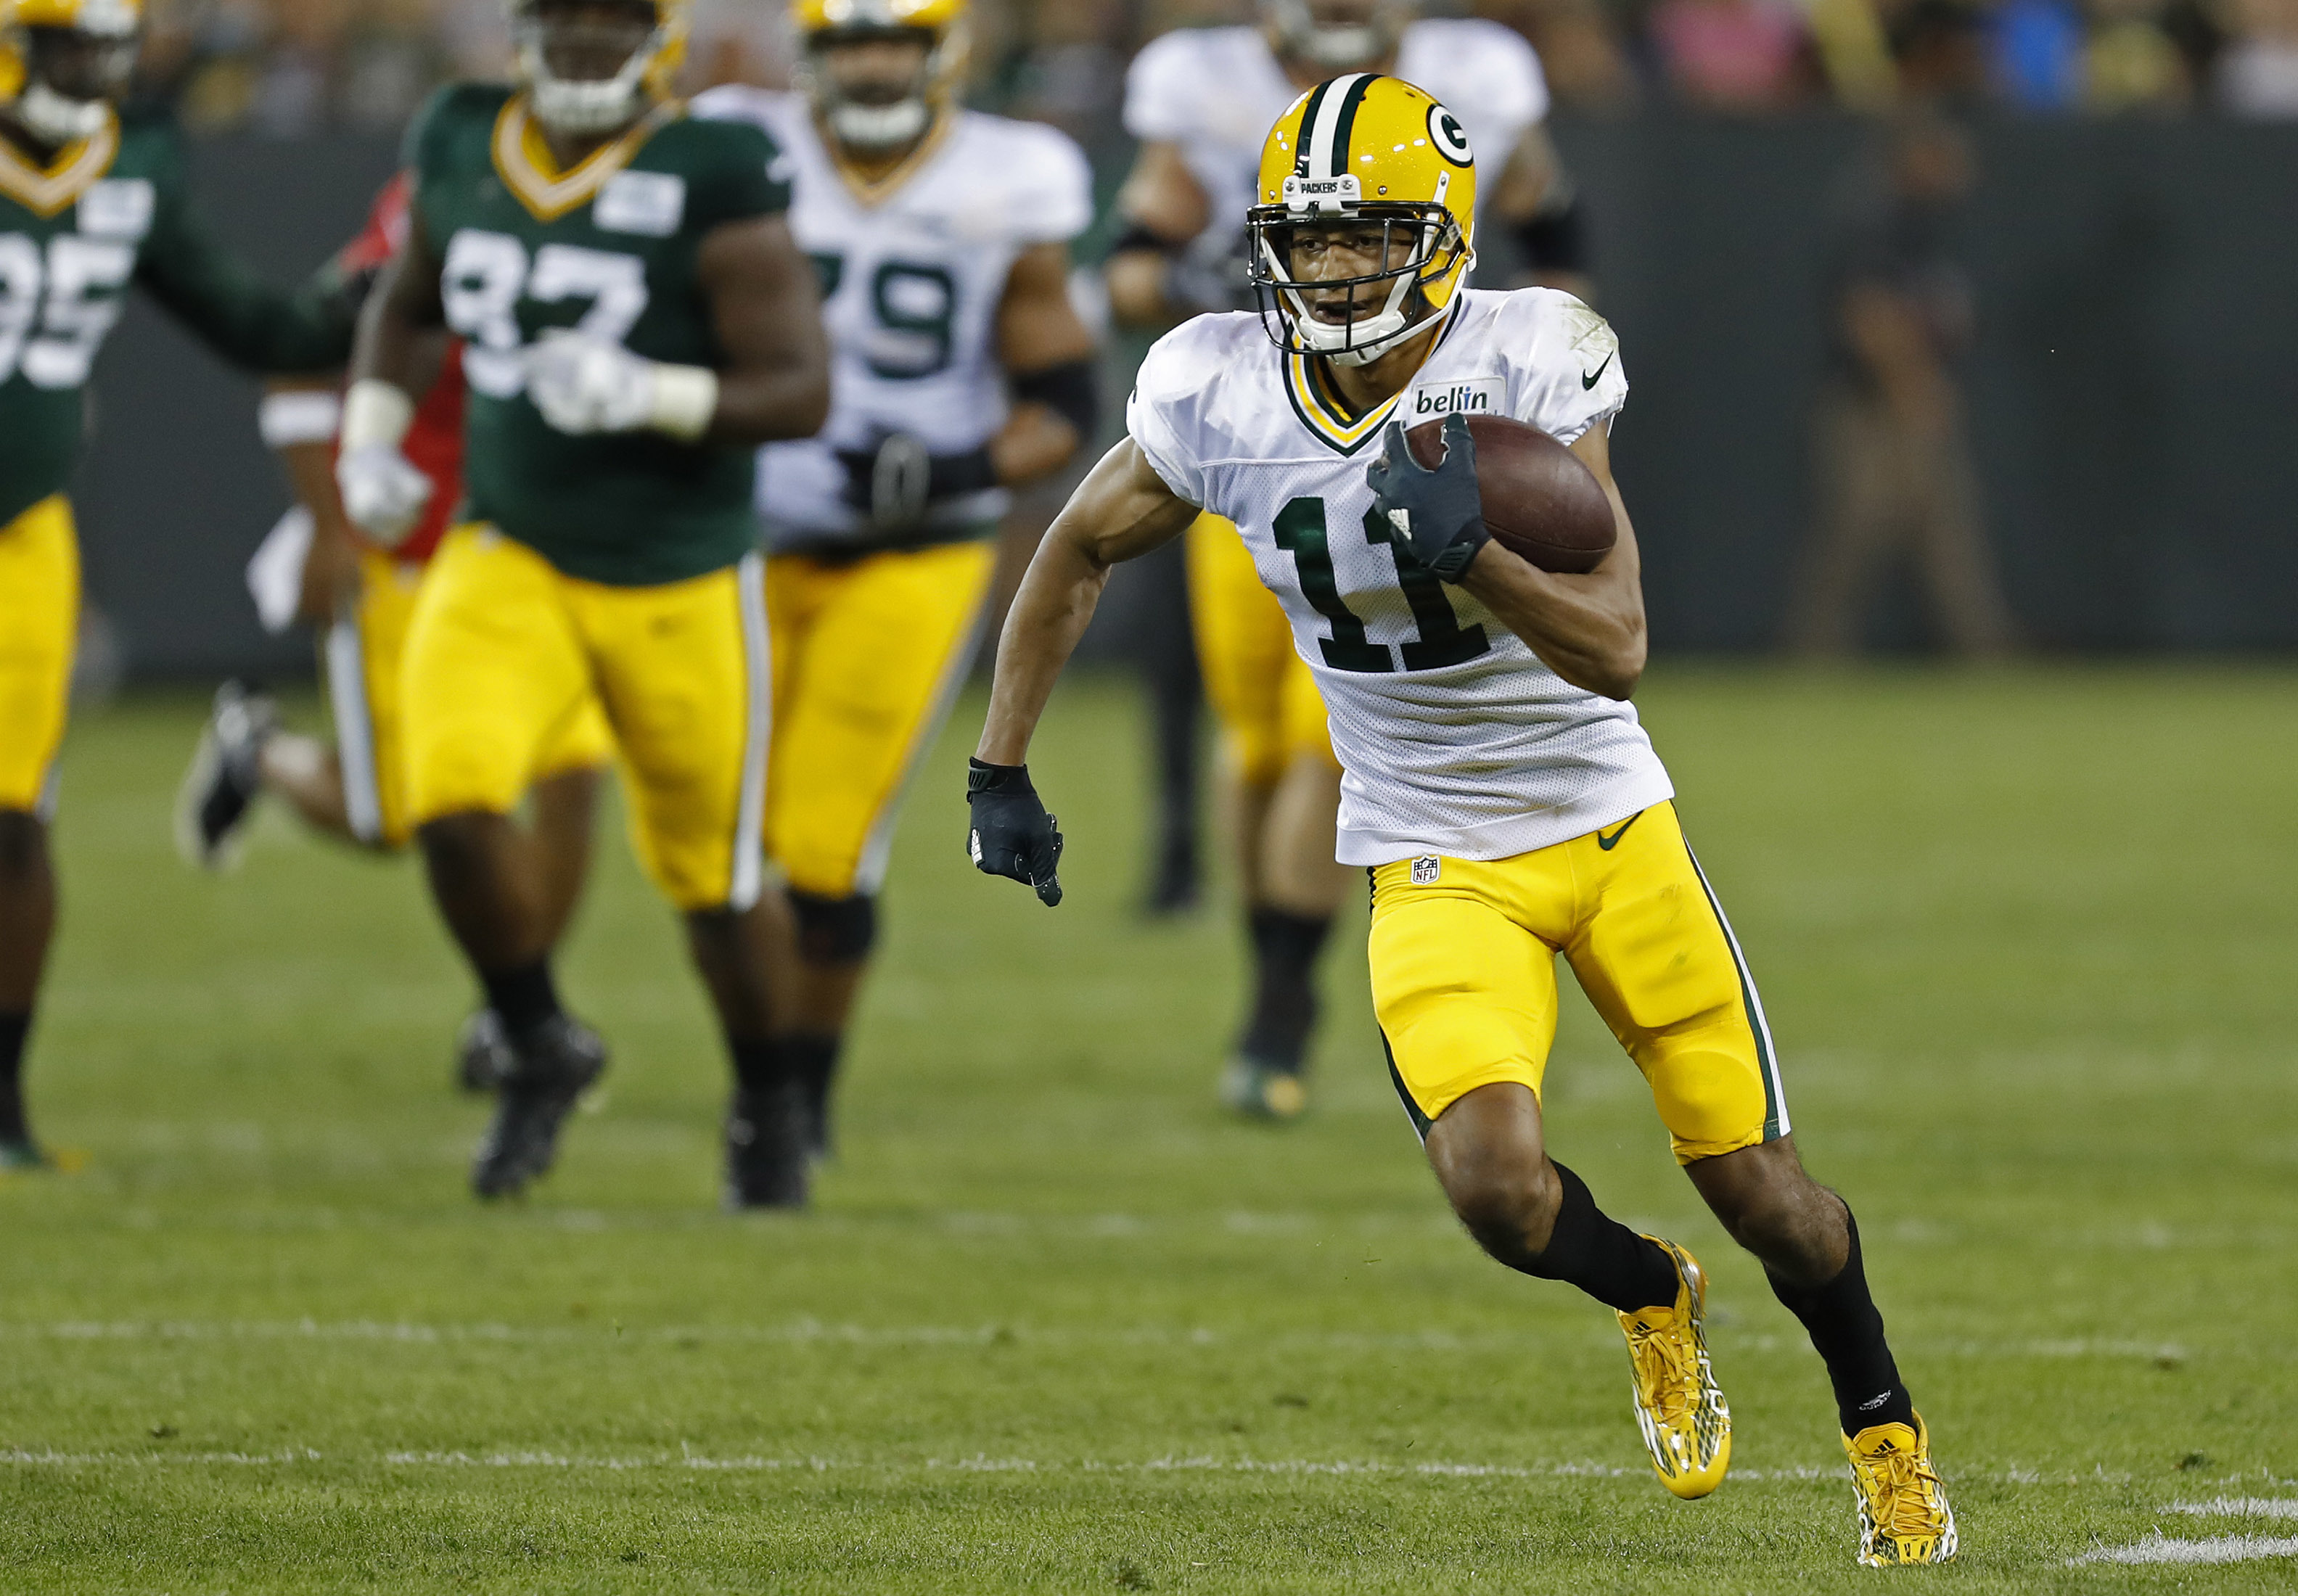 Green Bay Packers wide receiver Trevor Davis runs after making a catch during NFL football training camp, Sunday, July 31, 2016, in Green Bay, Wis. (AP Photo/Matt Ludtke)